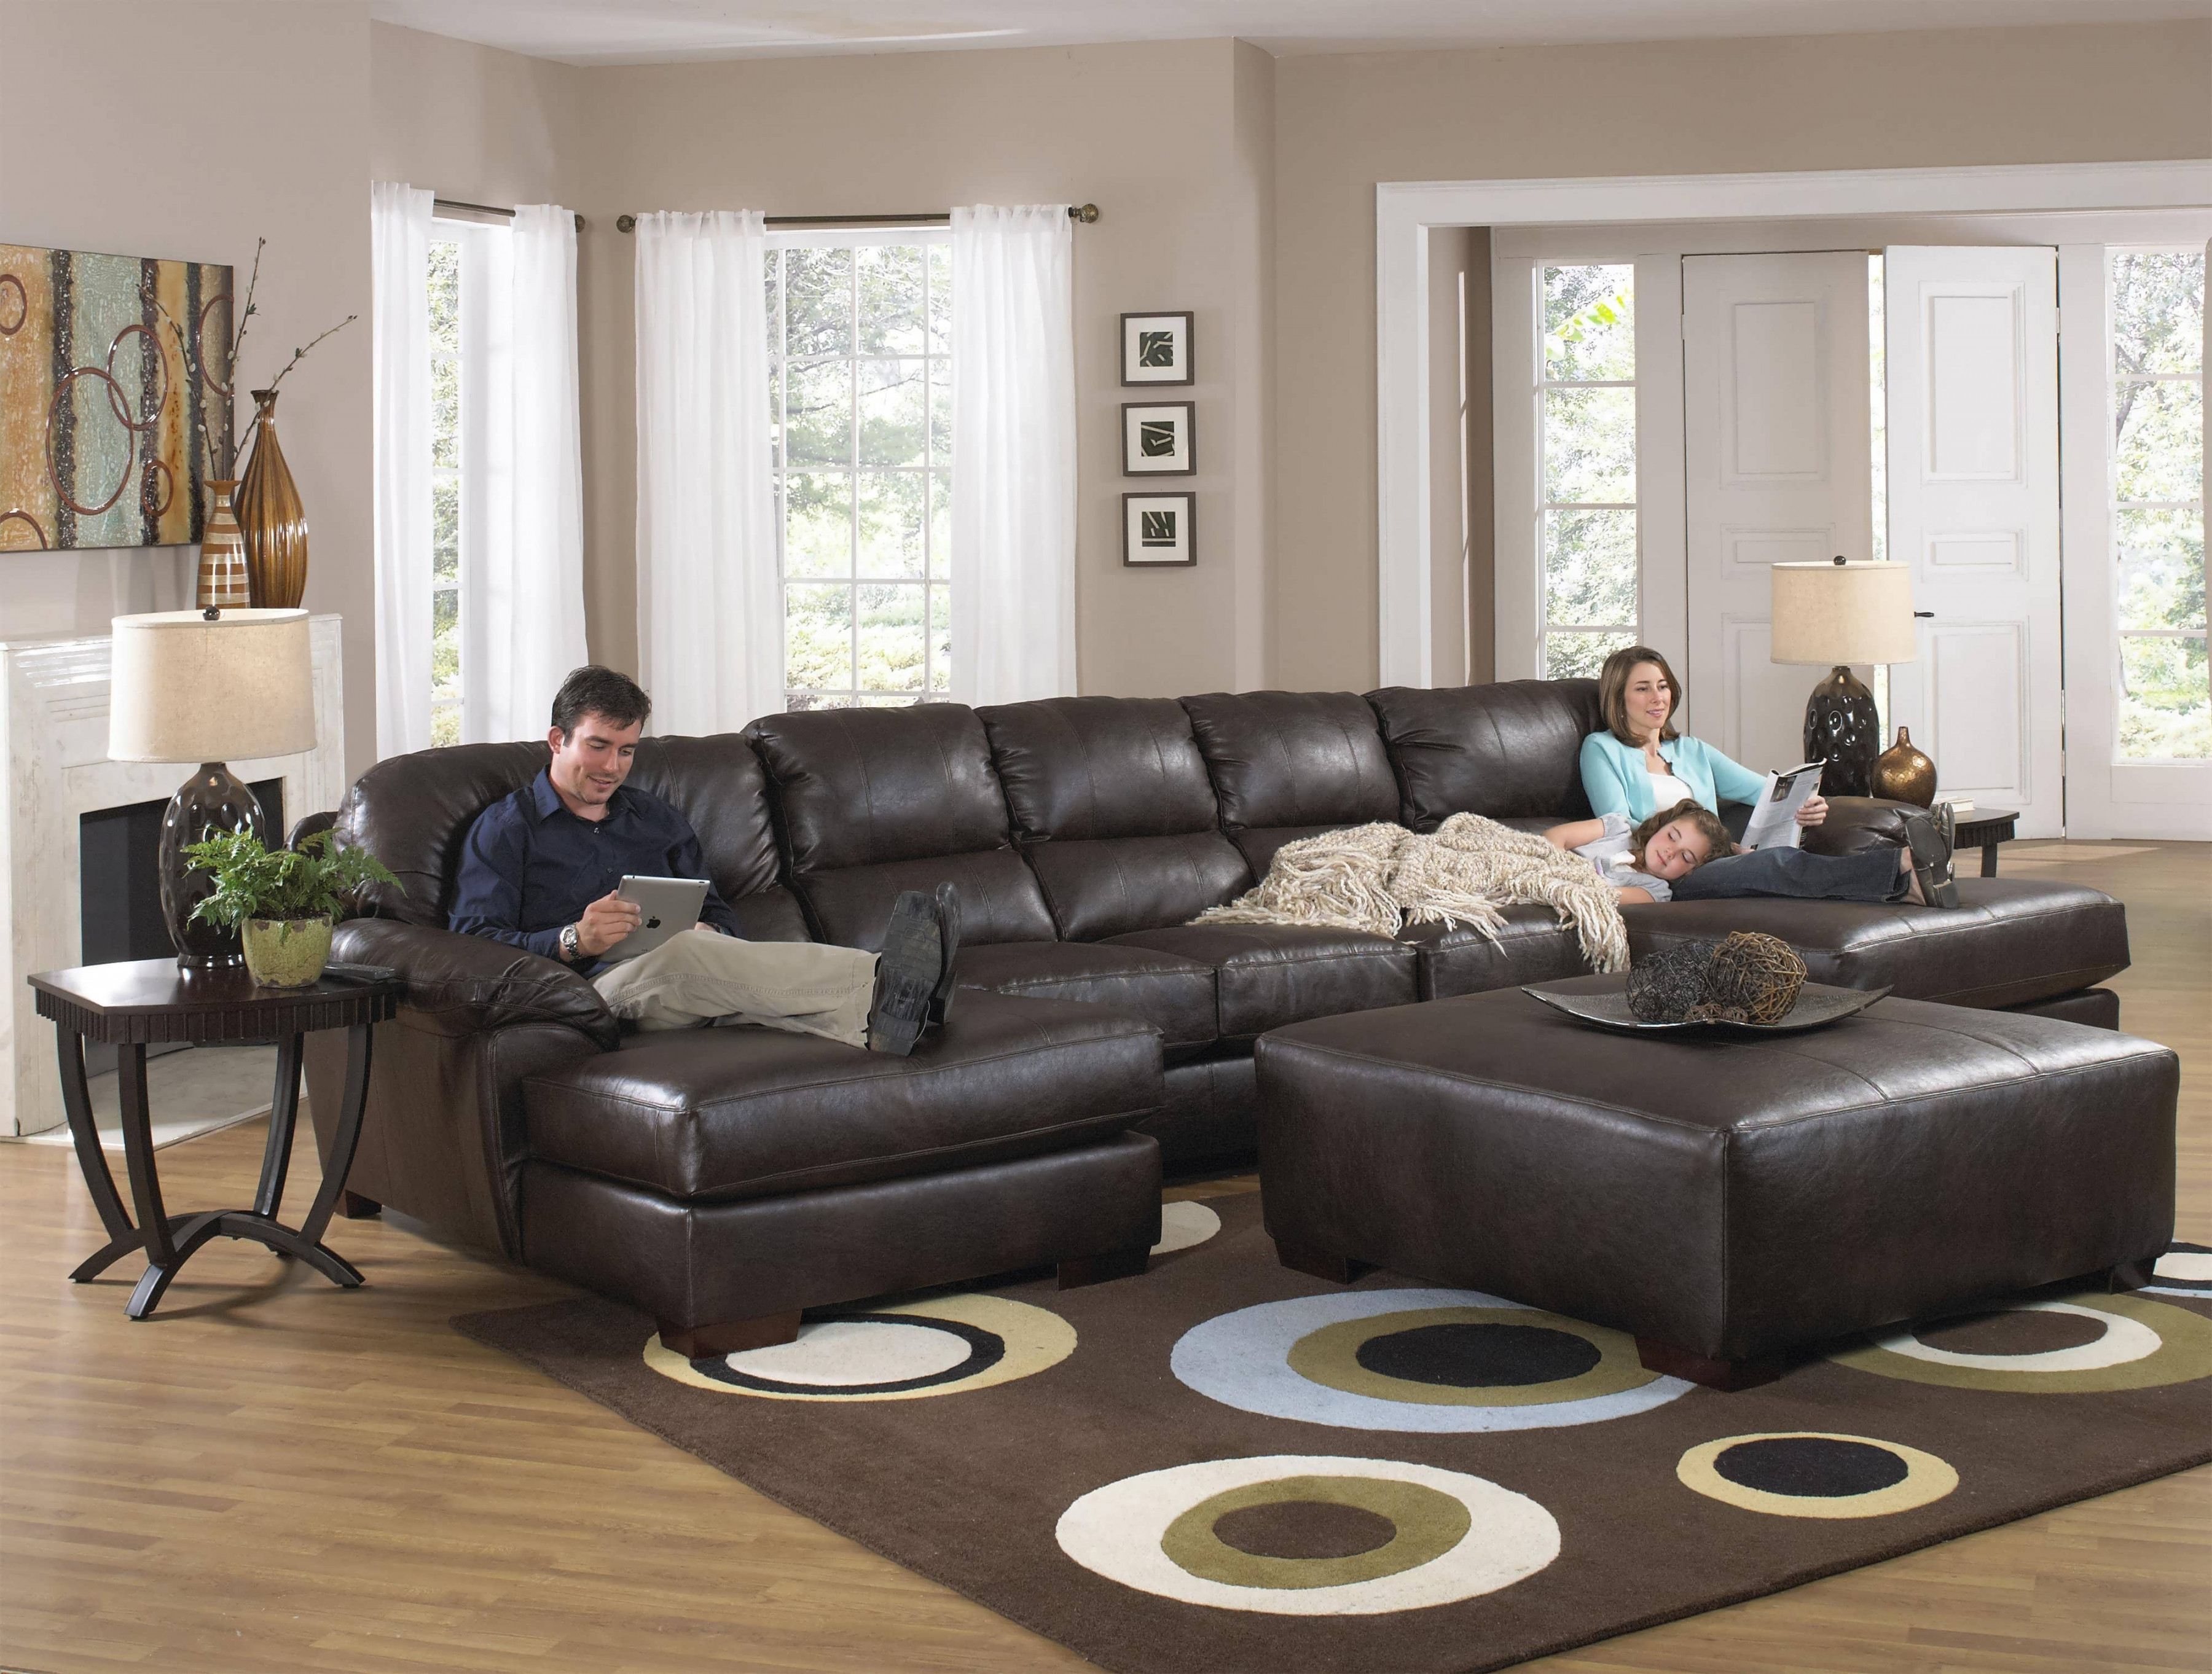 U Shaped Sectionals With Chaise Throughout Trendy Sofa : U Shaped Sofa Reclining Sectional With Chaise Sleeper (View 14 of 15)